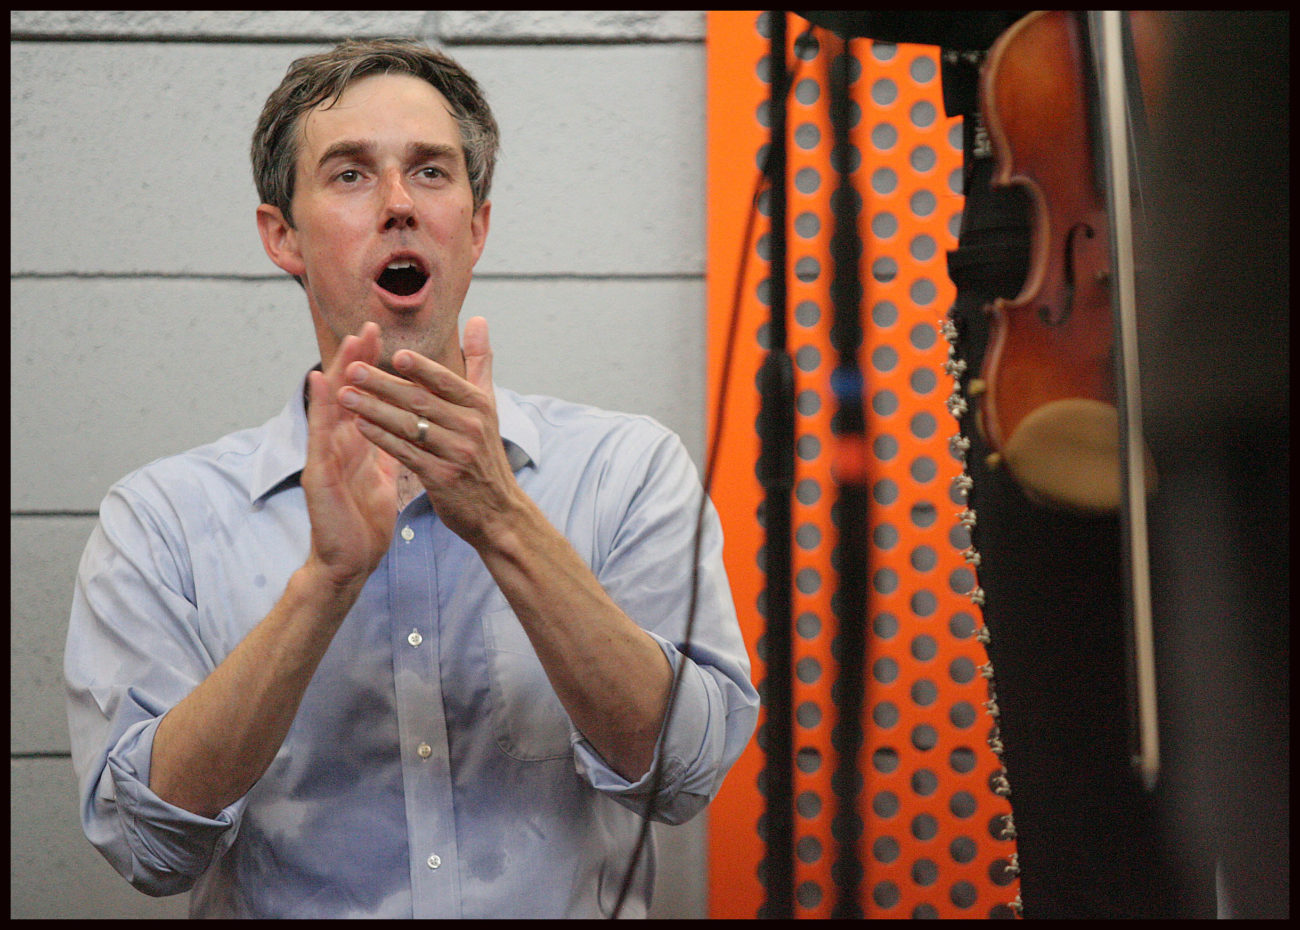 Beto O'Rourke takes heat for website's different messages in different languages